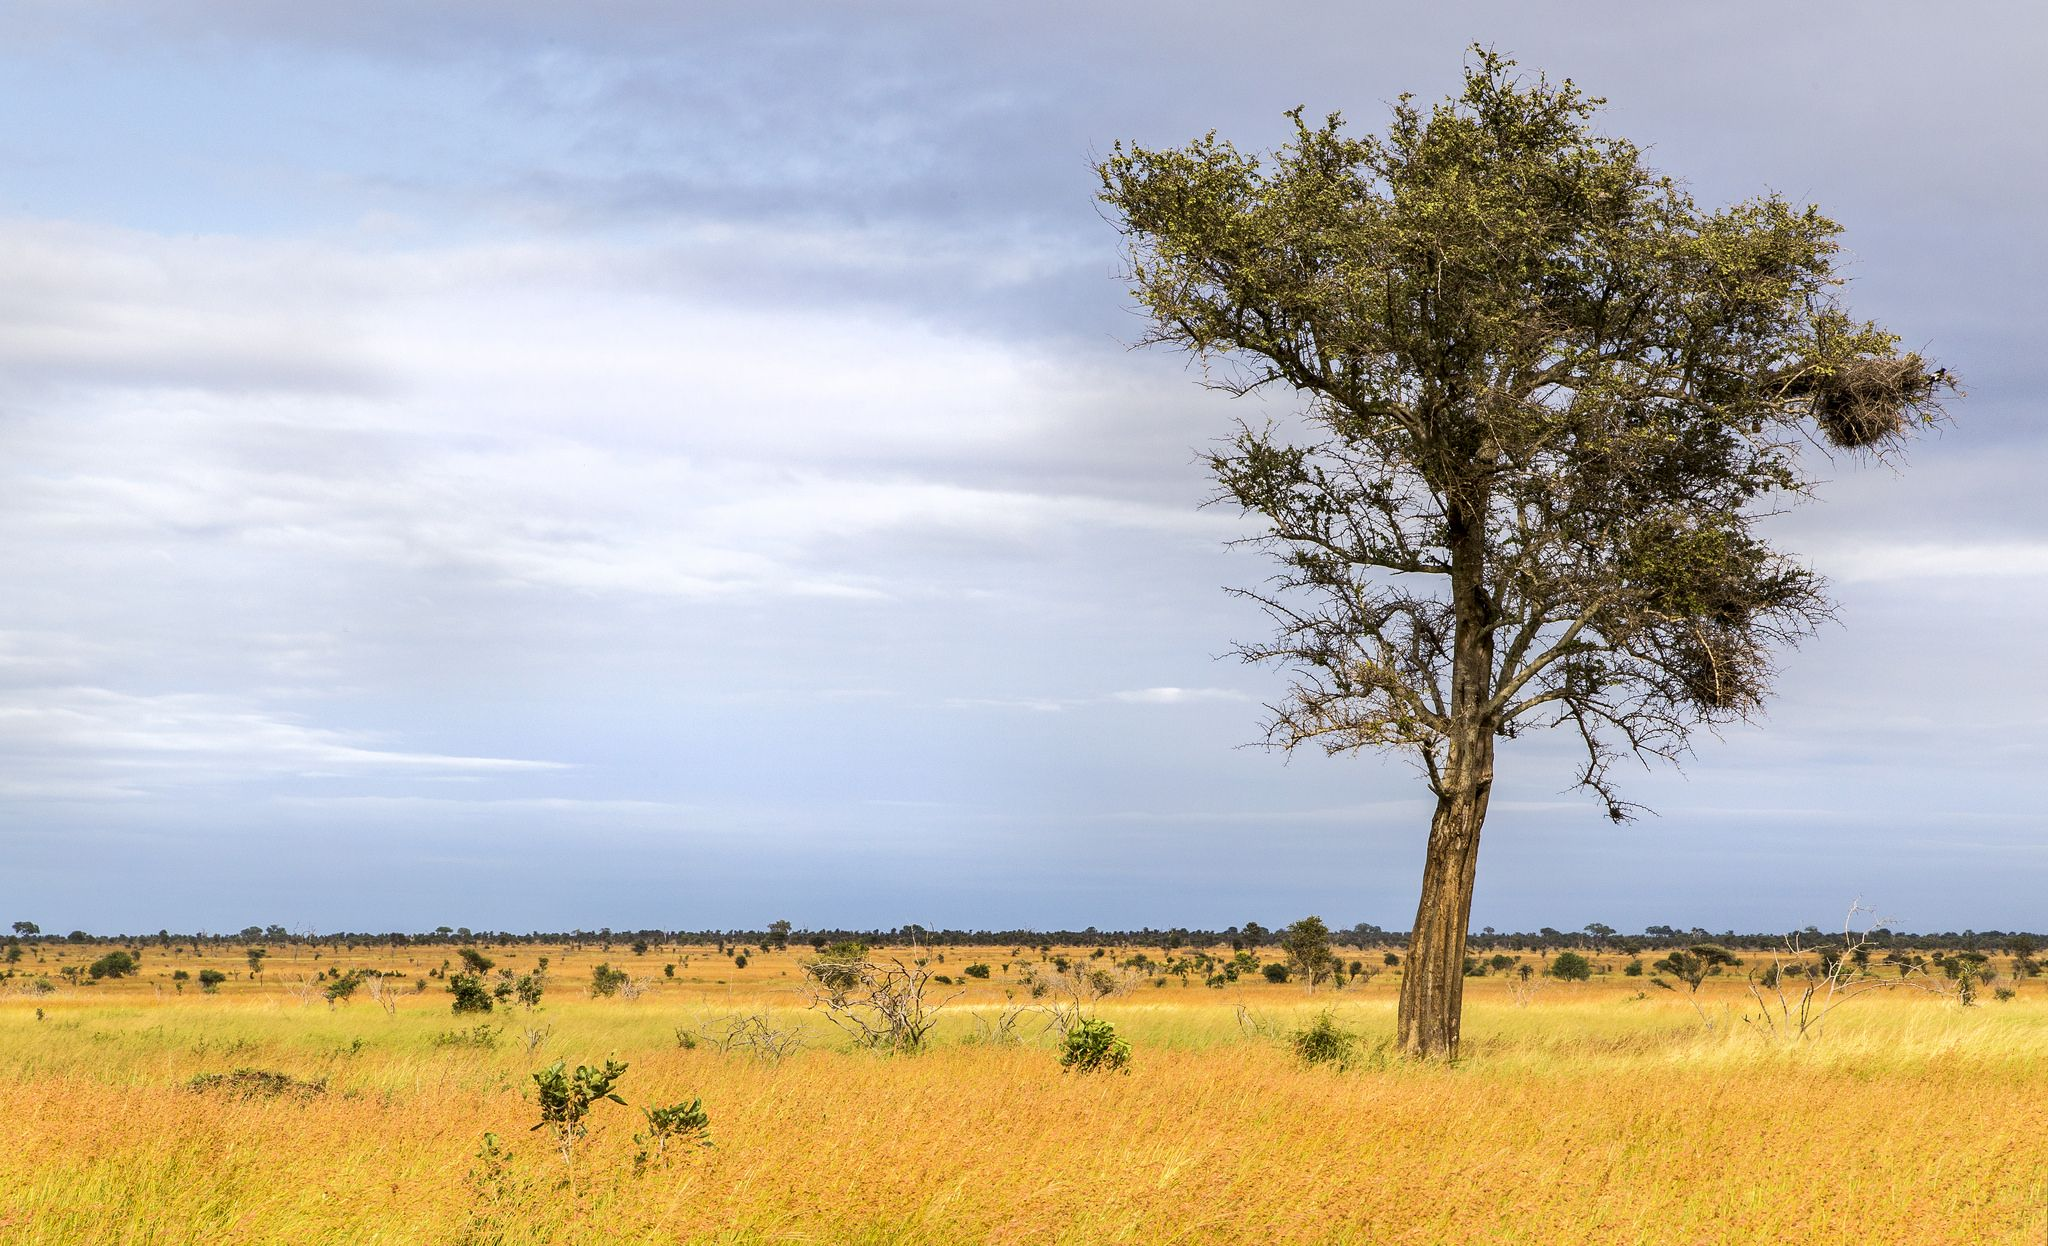 Central Kruger plains, sheldrickfalls